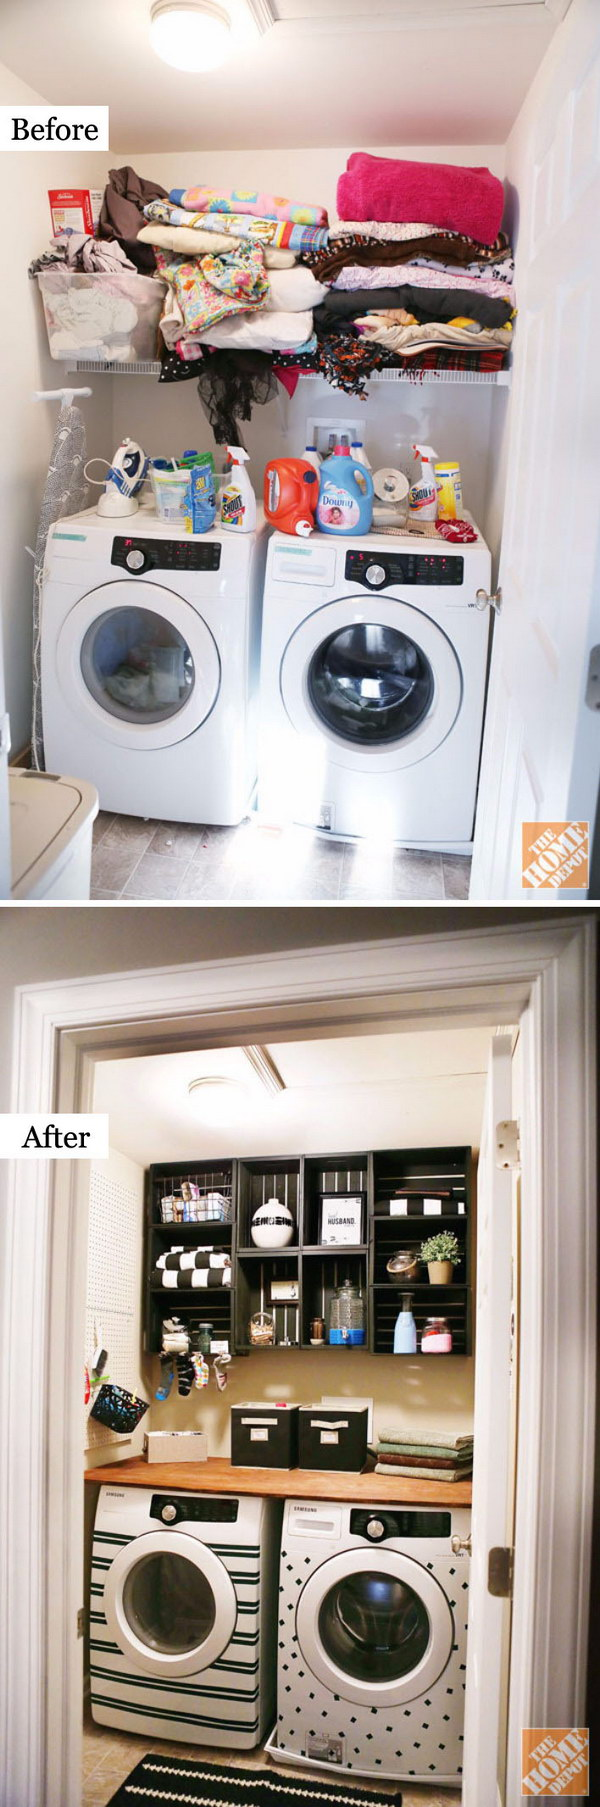 A Highly Amazing Laundry Room Renovation.